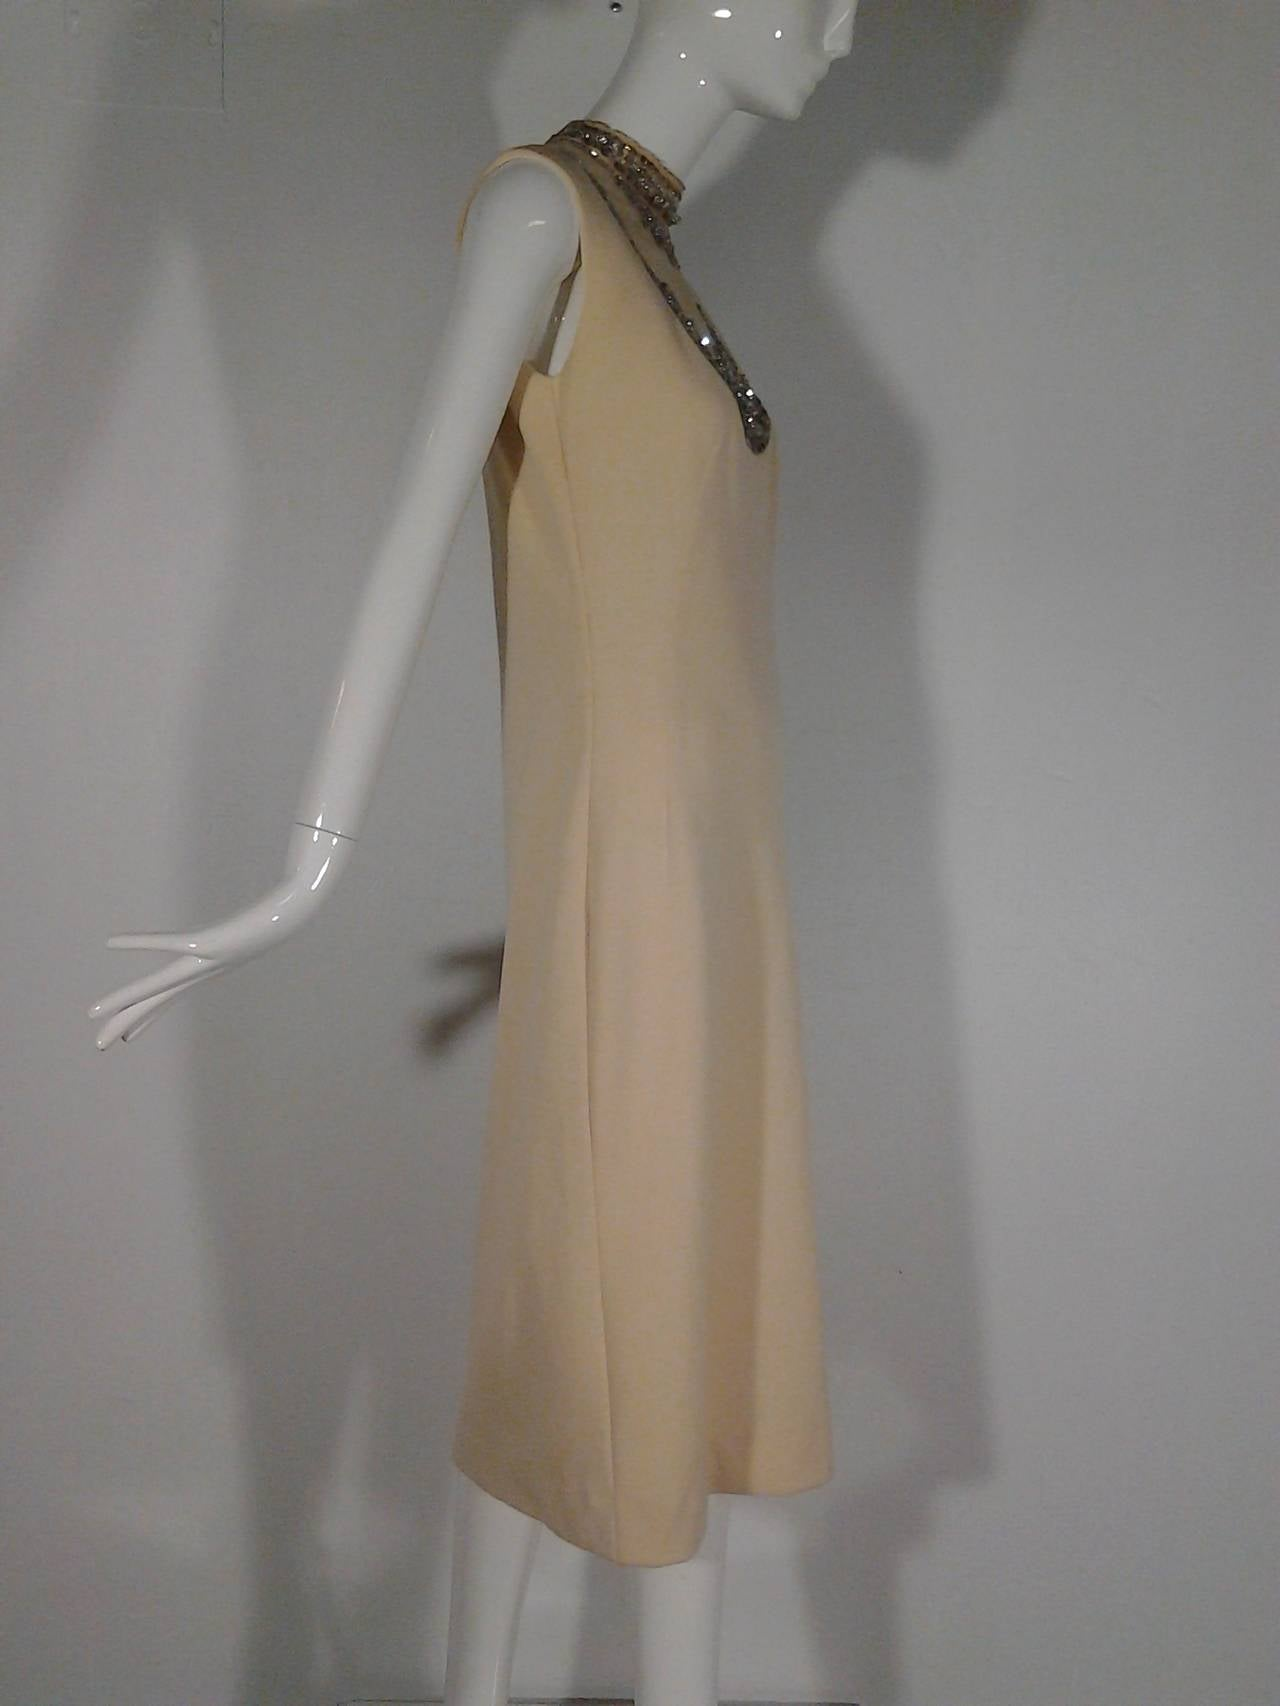 Mr Blackwell Cocktail Dress with Nude Panel and Elaborate Rhinestones 2